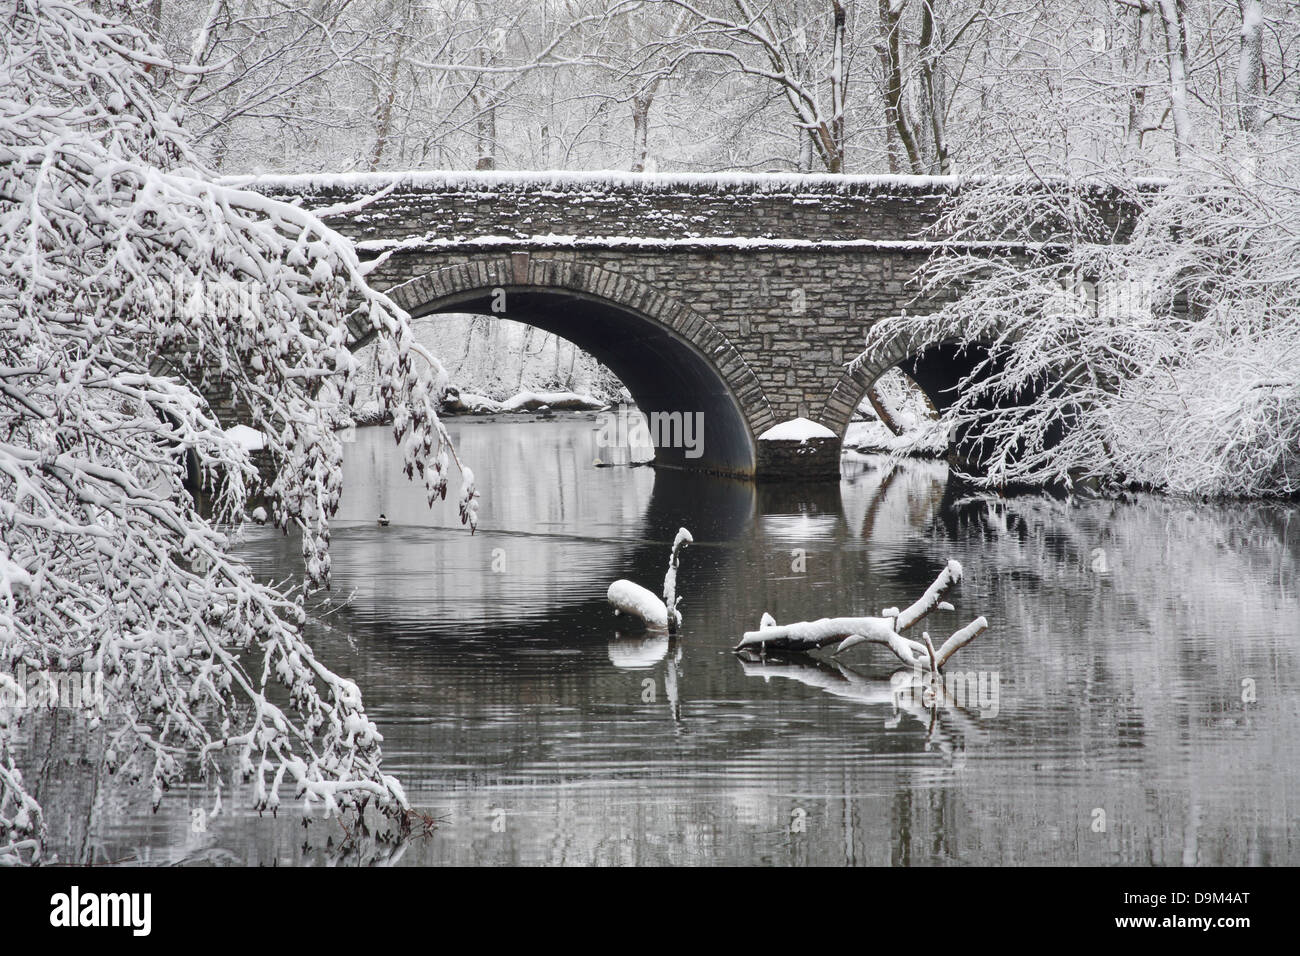 Snow Covered Trees Framing A Stone Bridge And River During Winter In The Park, Sharon Woods, Southwestern Ohio, Stock Photo